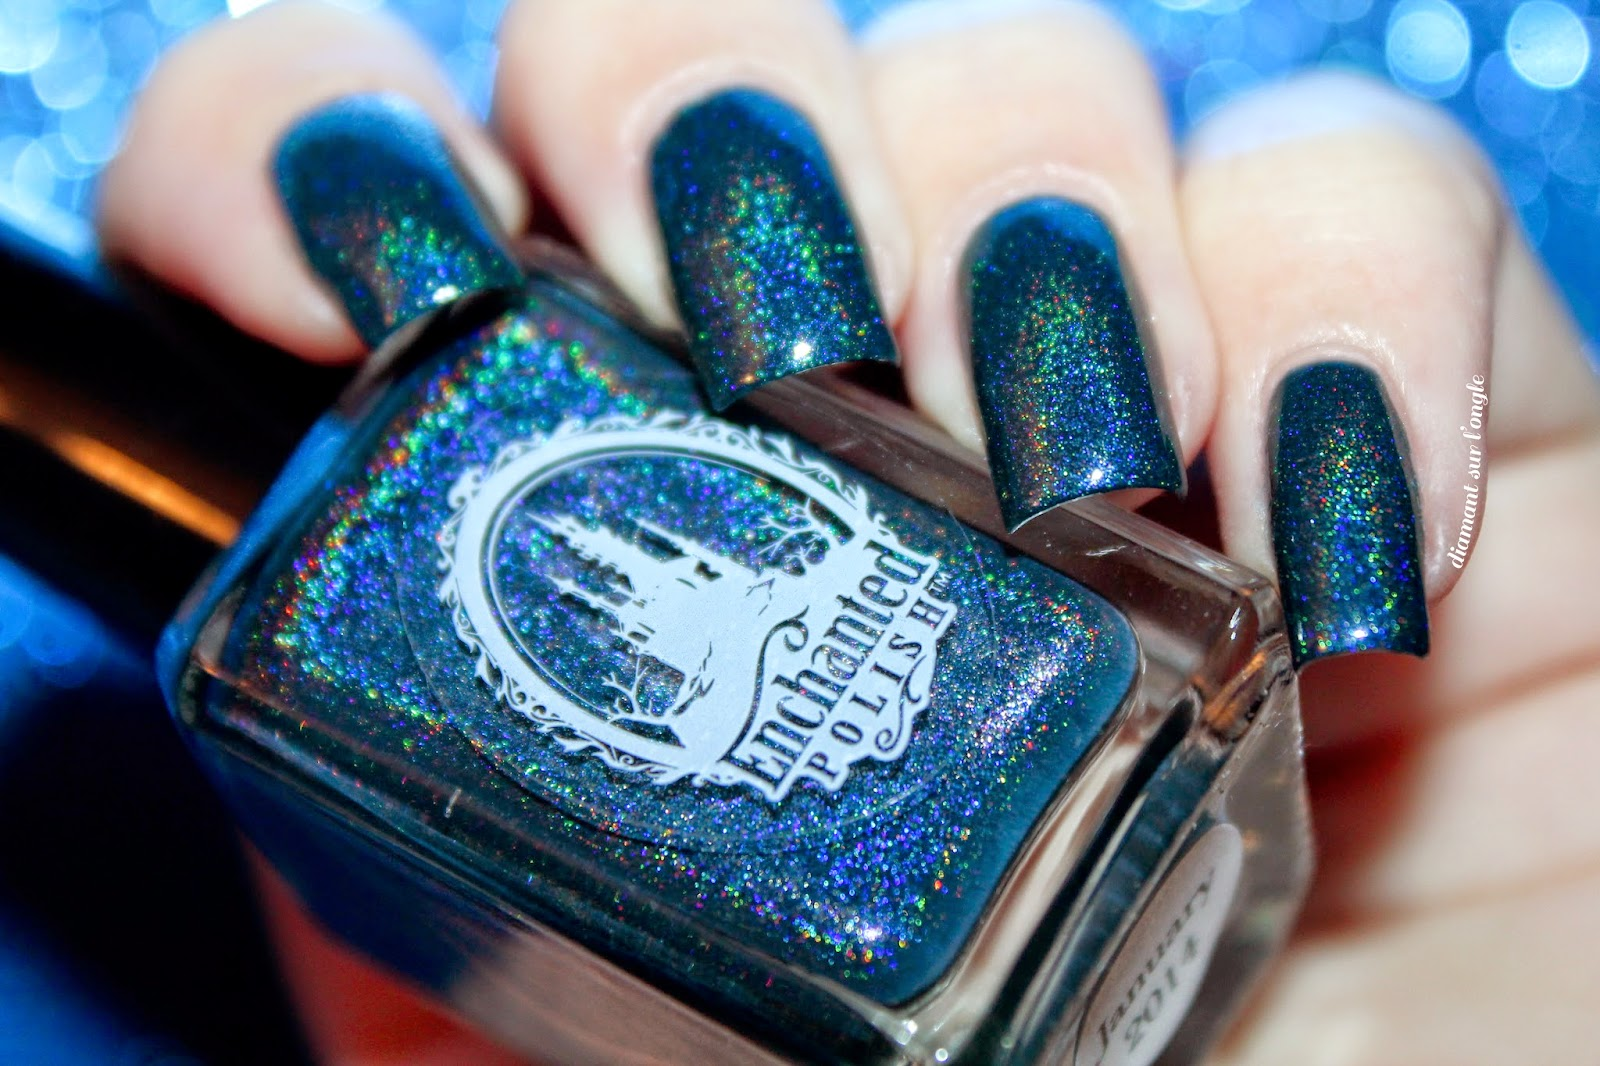 Swatch of January 2014 by Enchanted Polish